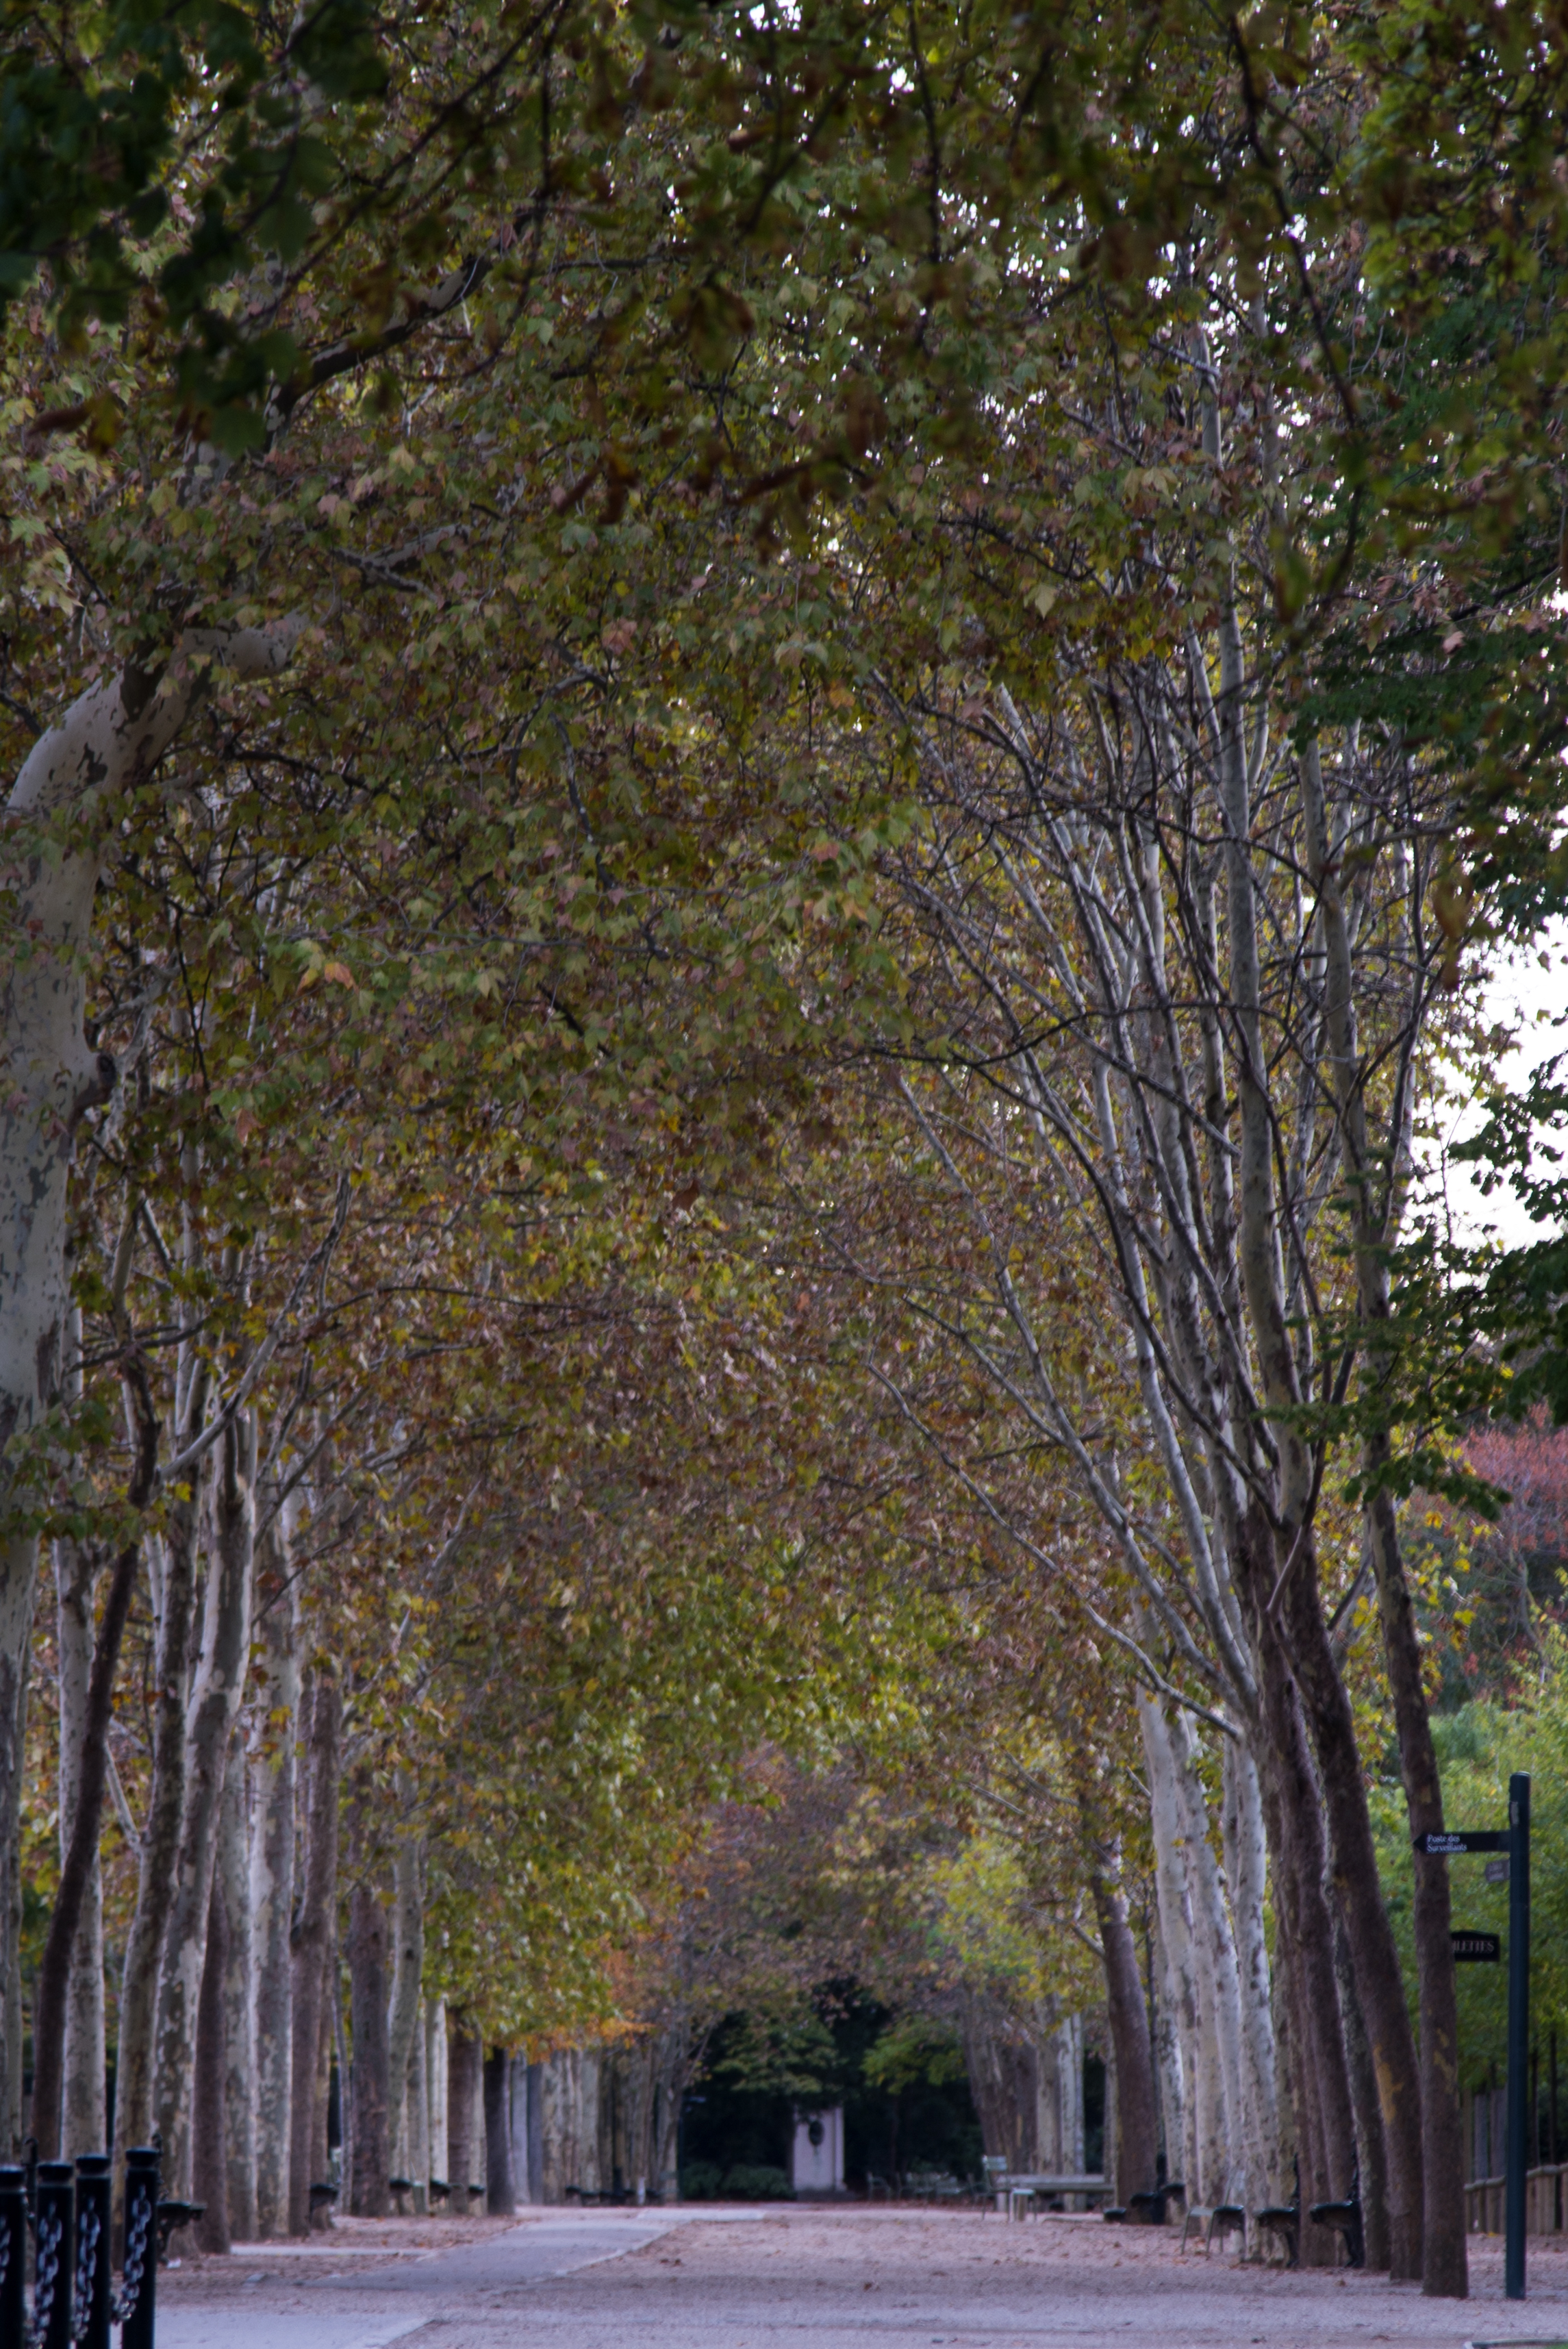 Autumnal Alleys - Paris - 3283